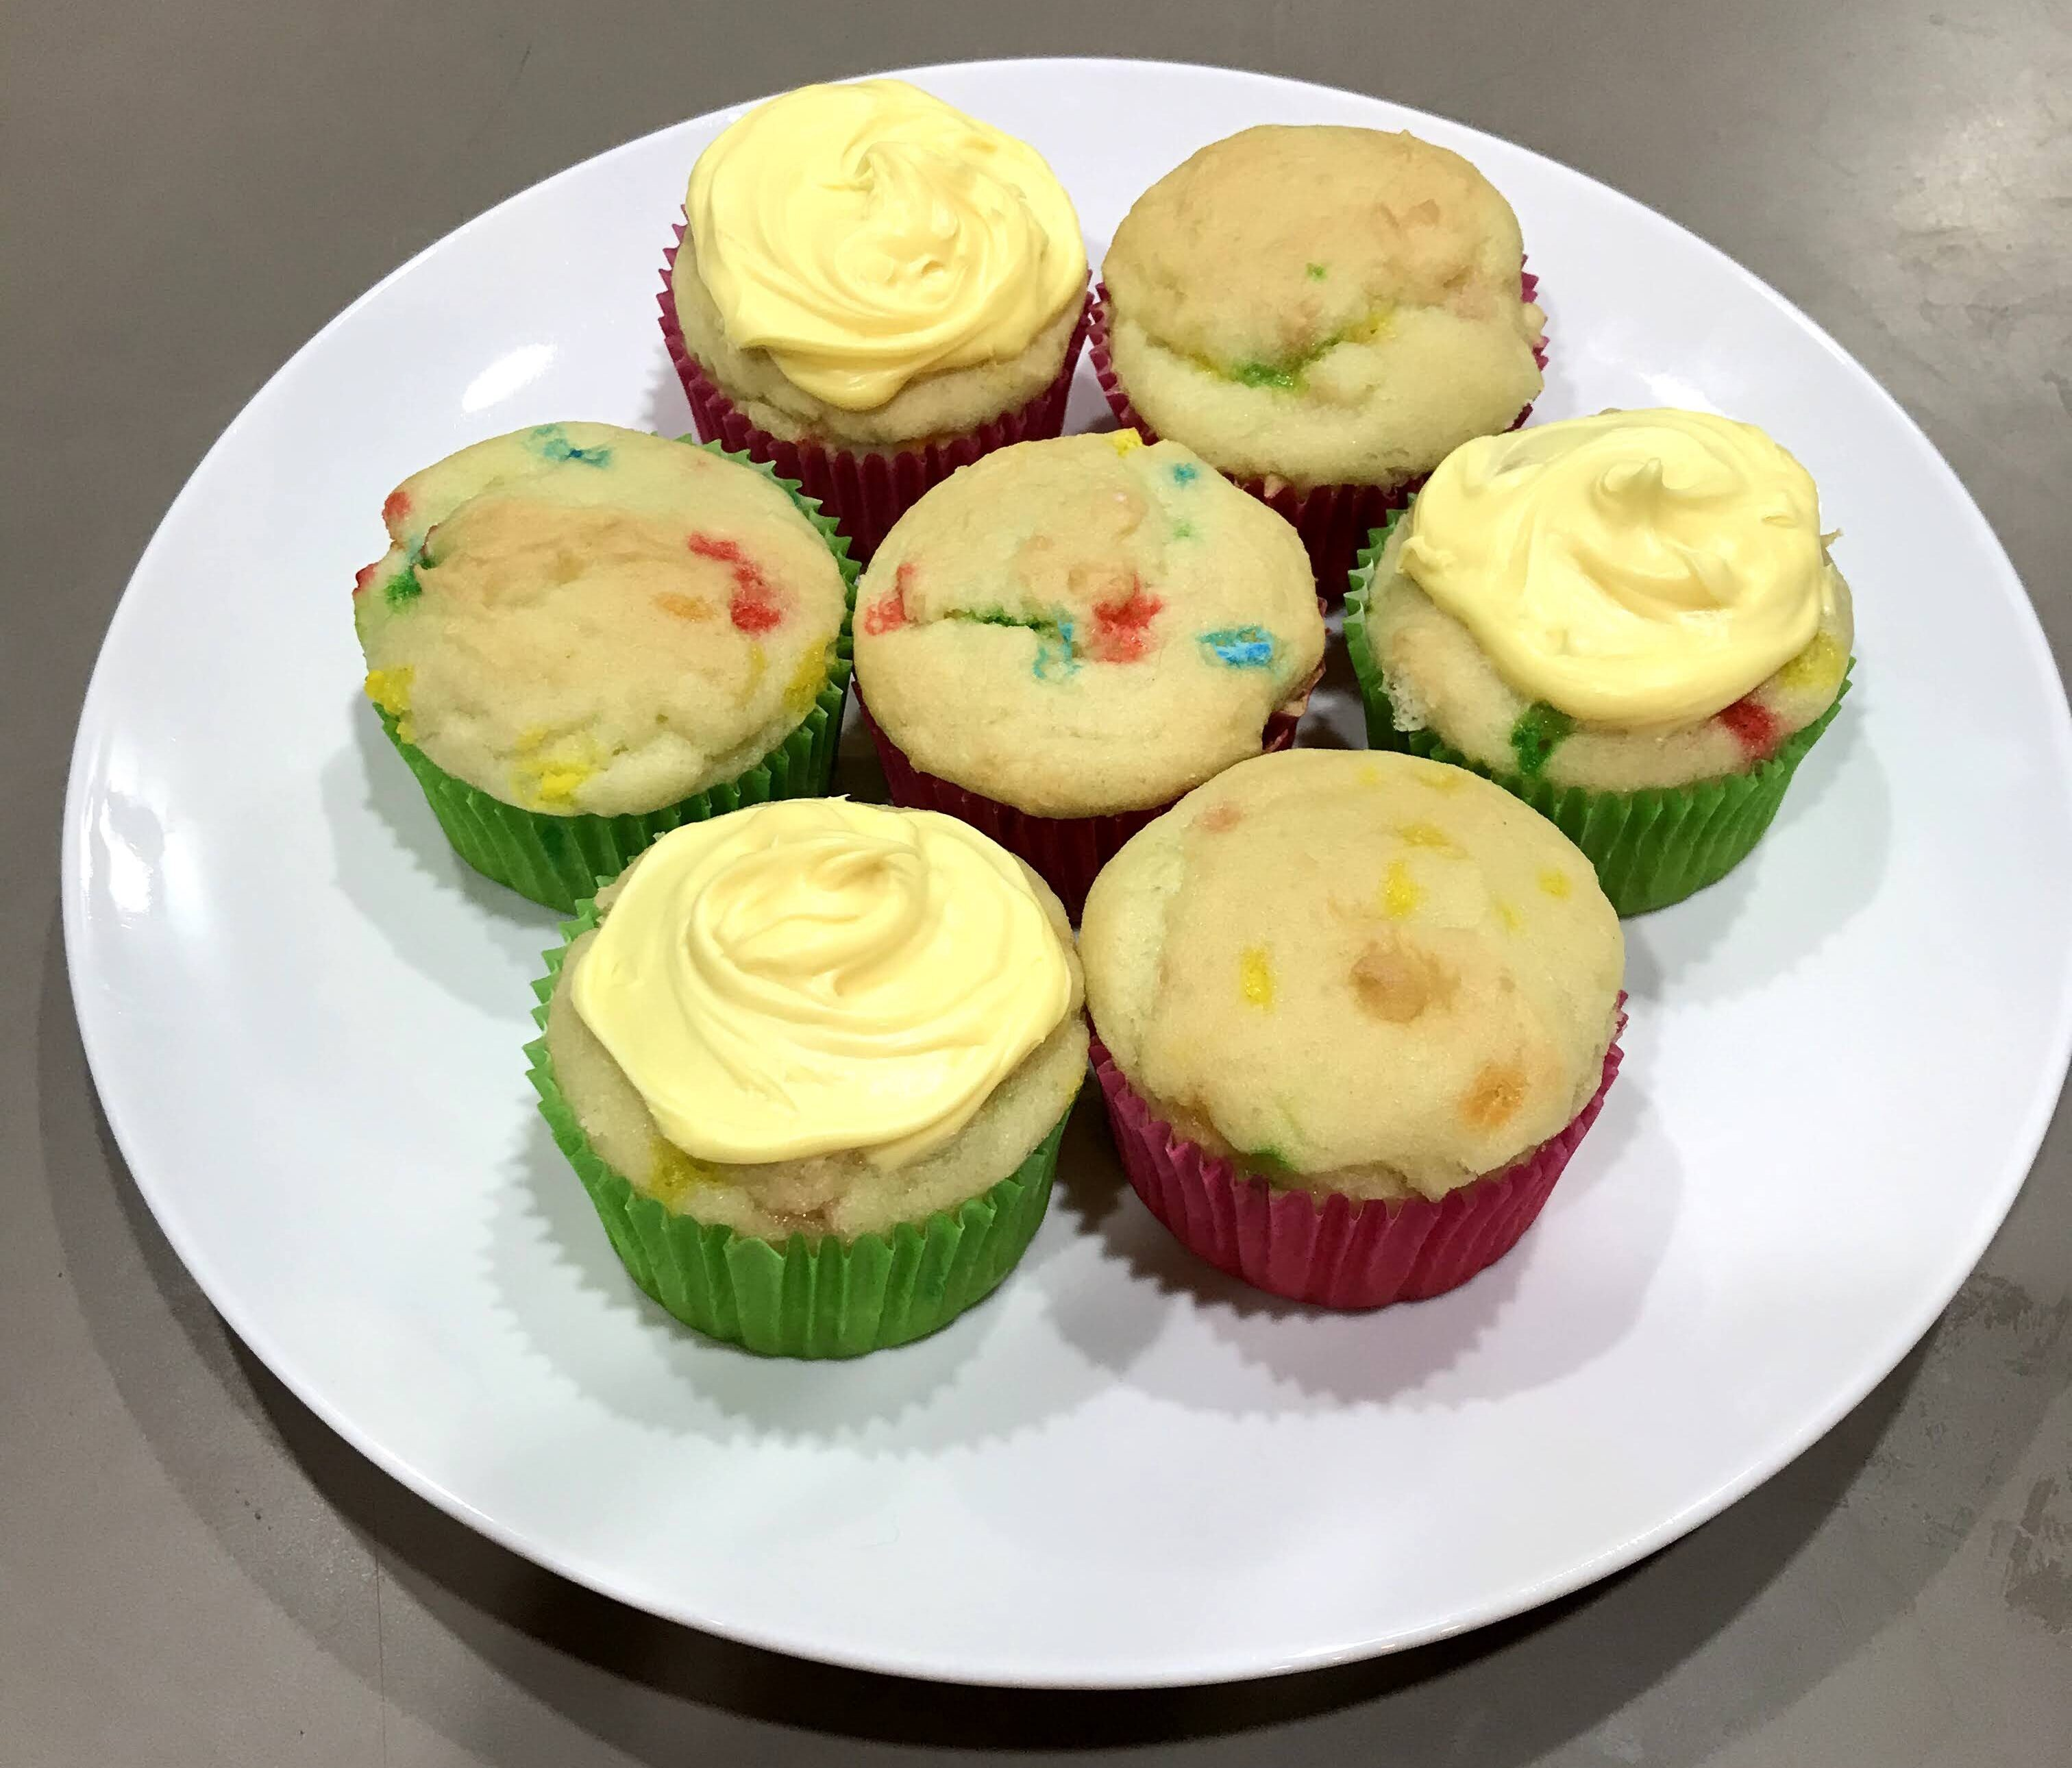 Gluten free confetti cupcakes with frosting